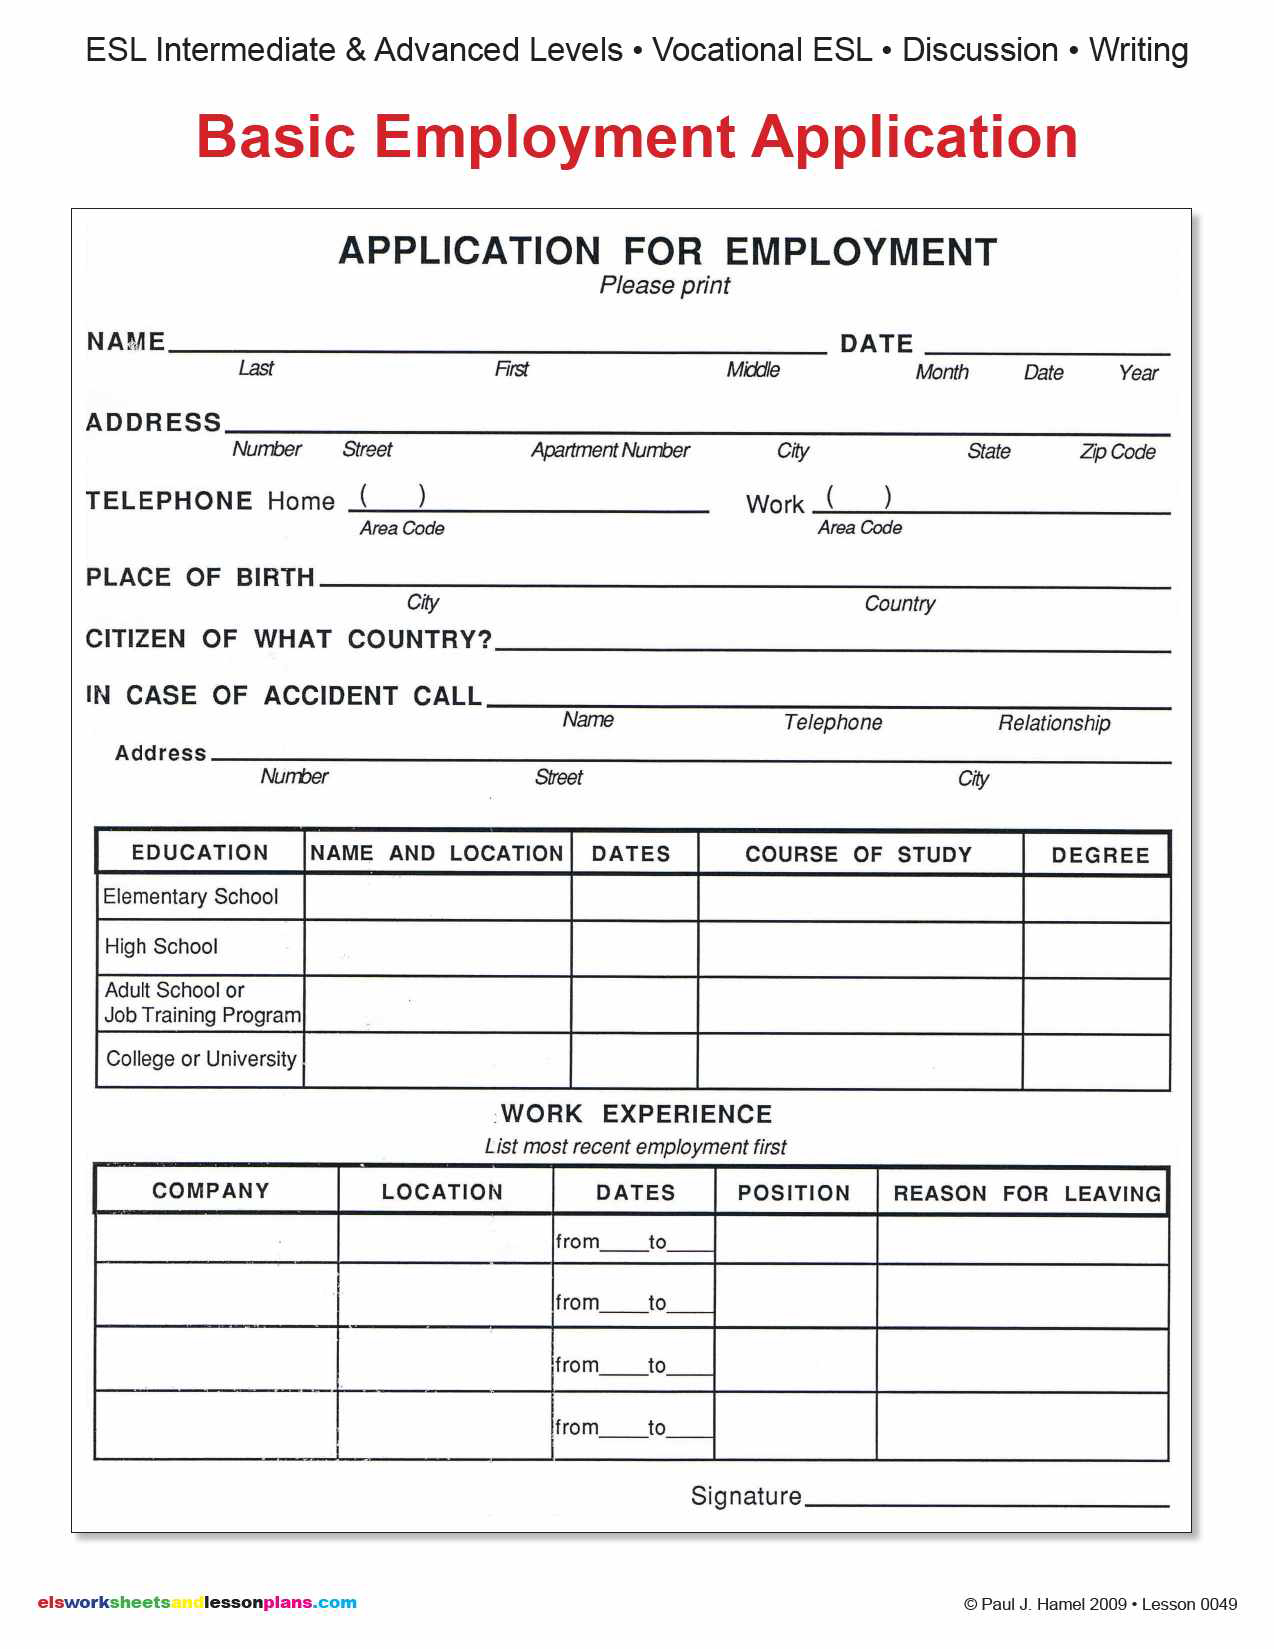 ... application esl basic employment application payloadz express 52